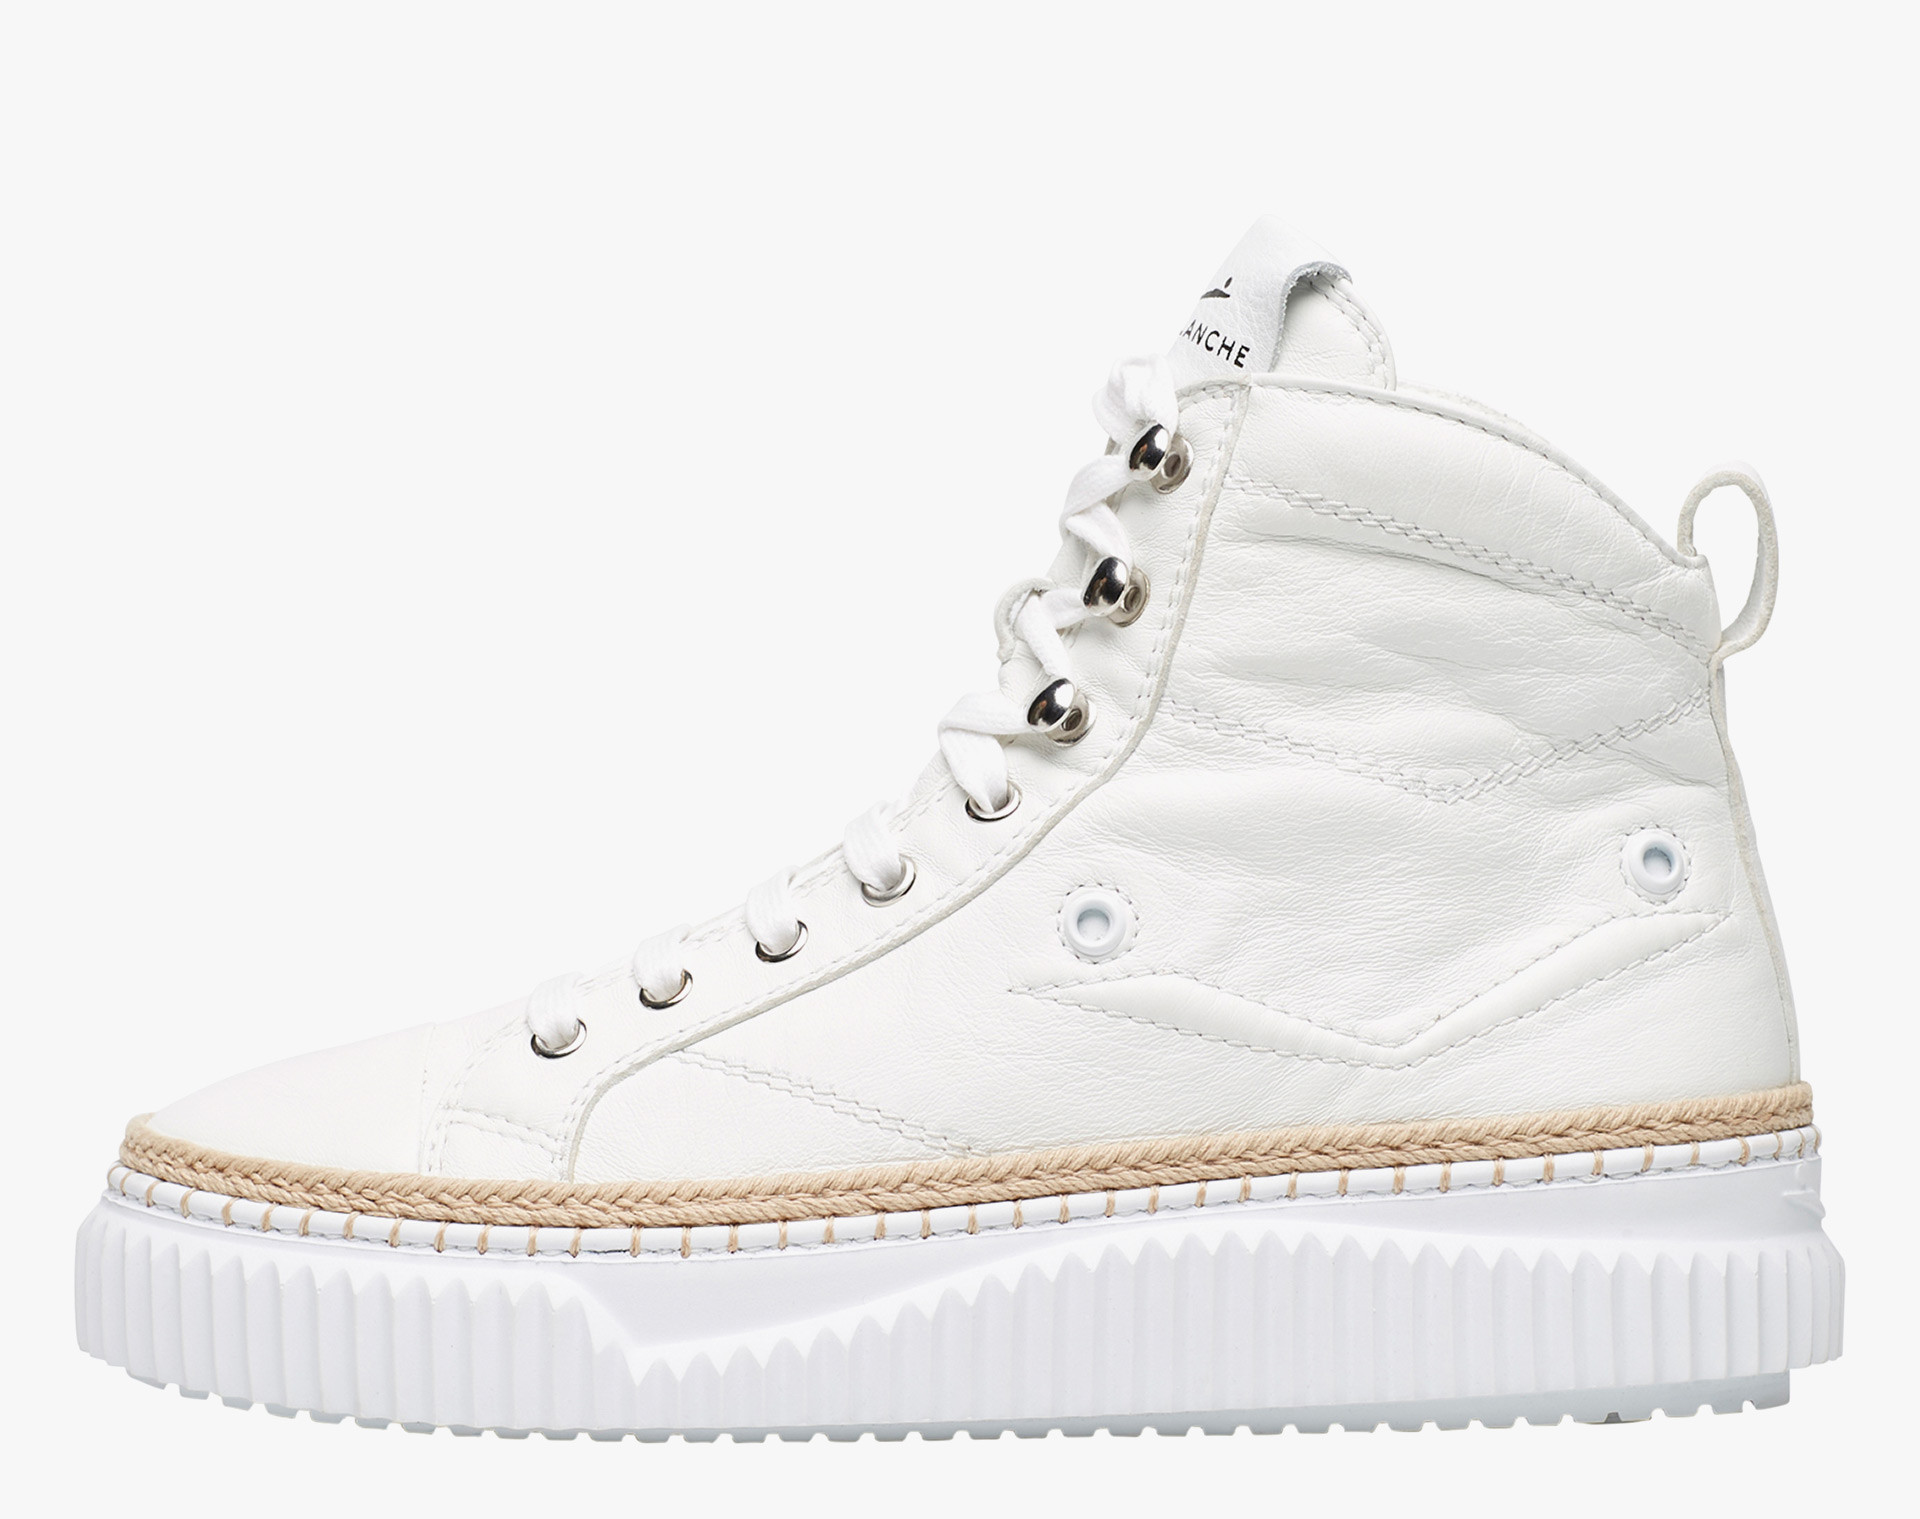 MAIORCA HIGH - High leather sneaker with raffia cord - White